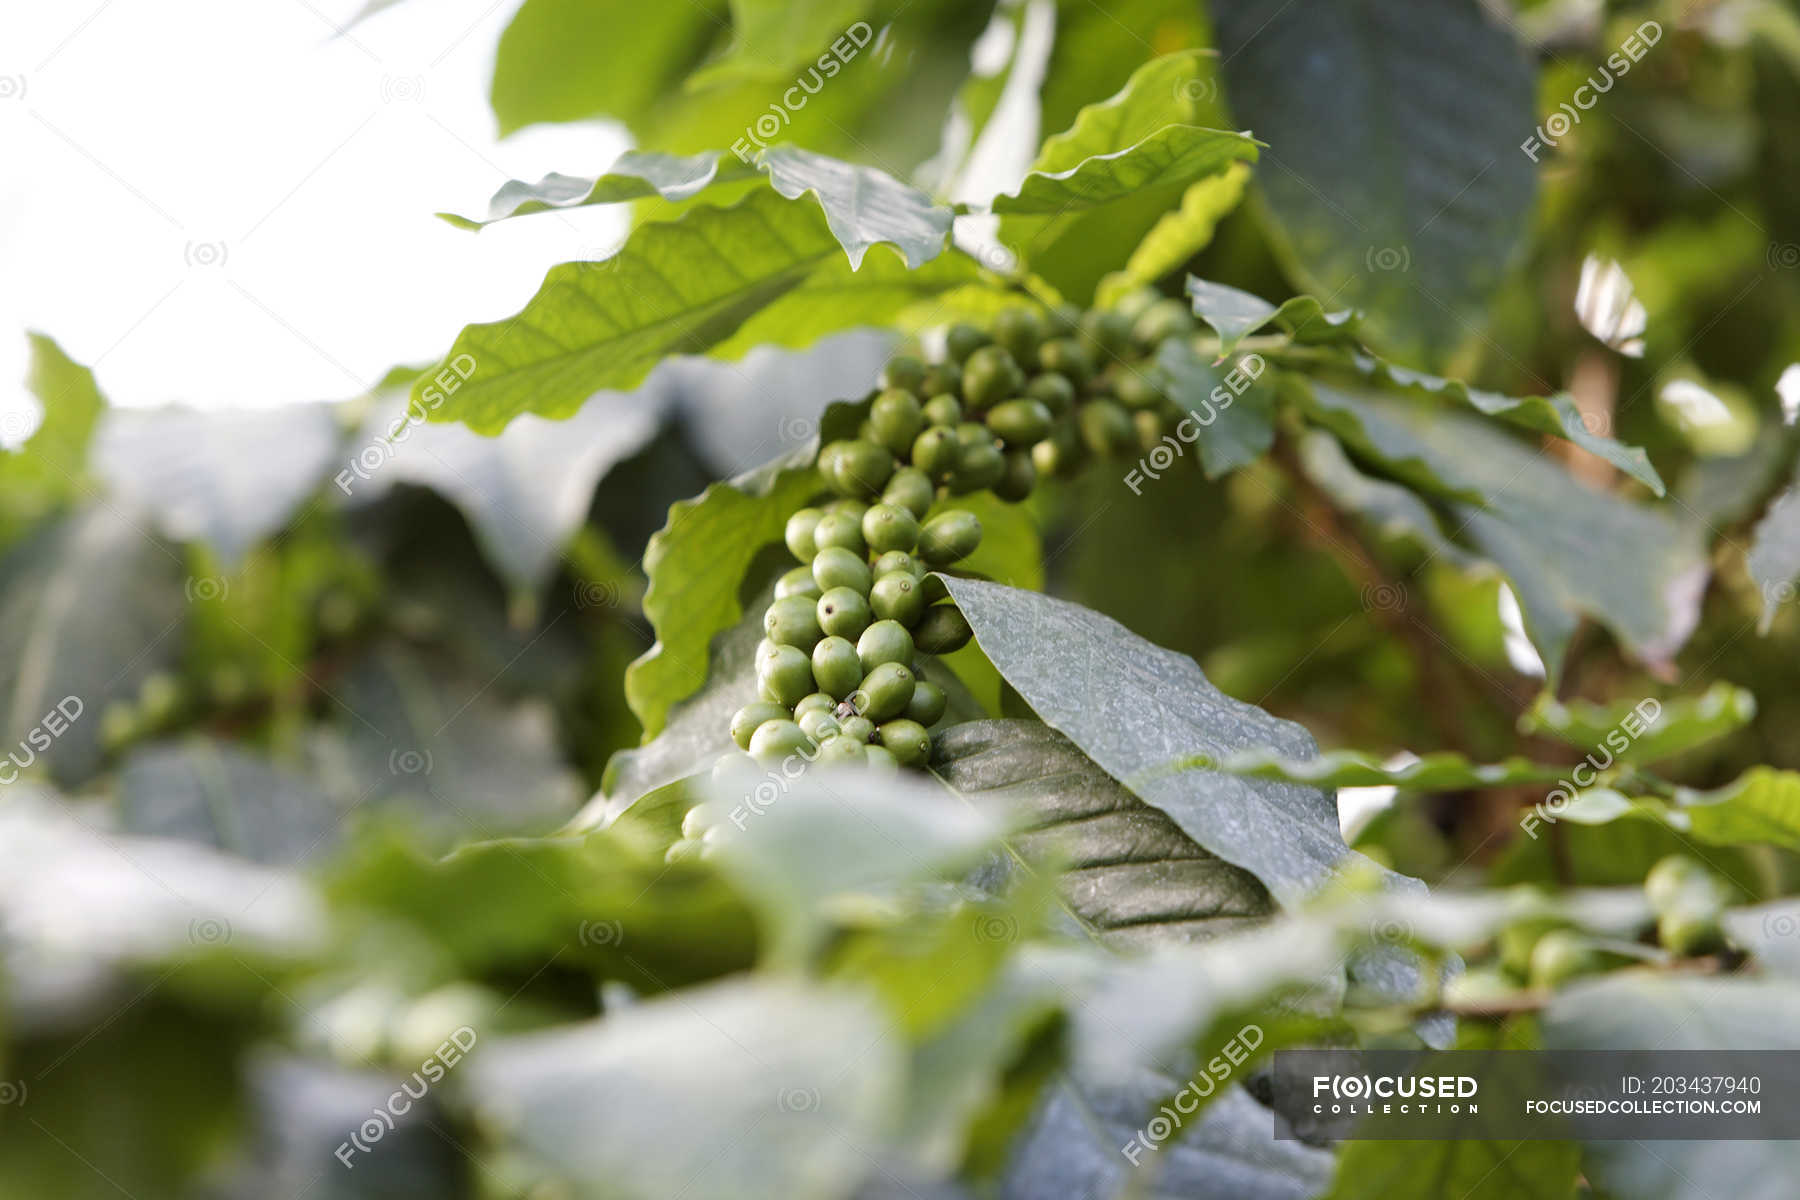 Growing Green Coffee Beans On Plant With Leaves Cultivate Raw